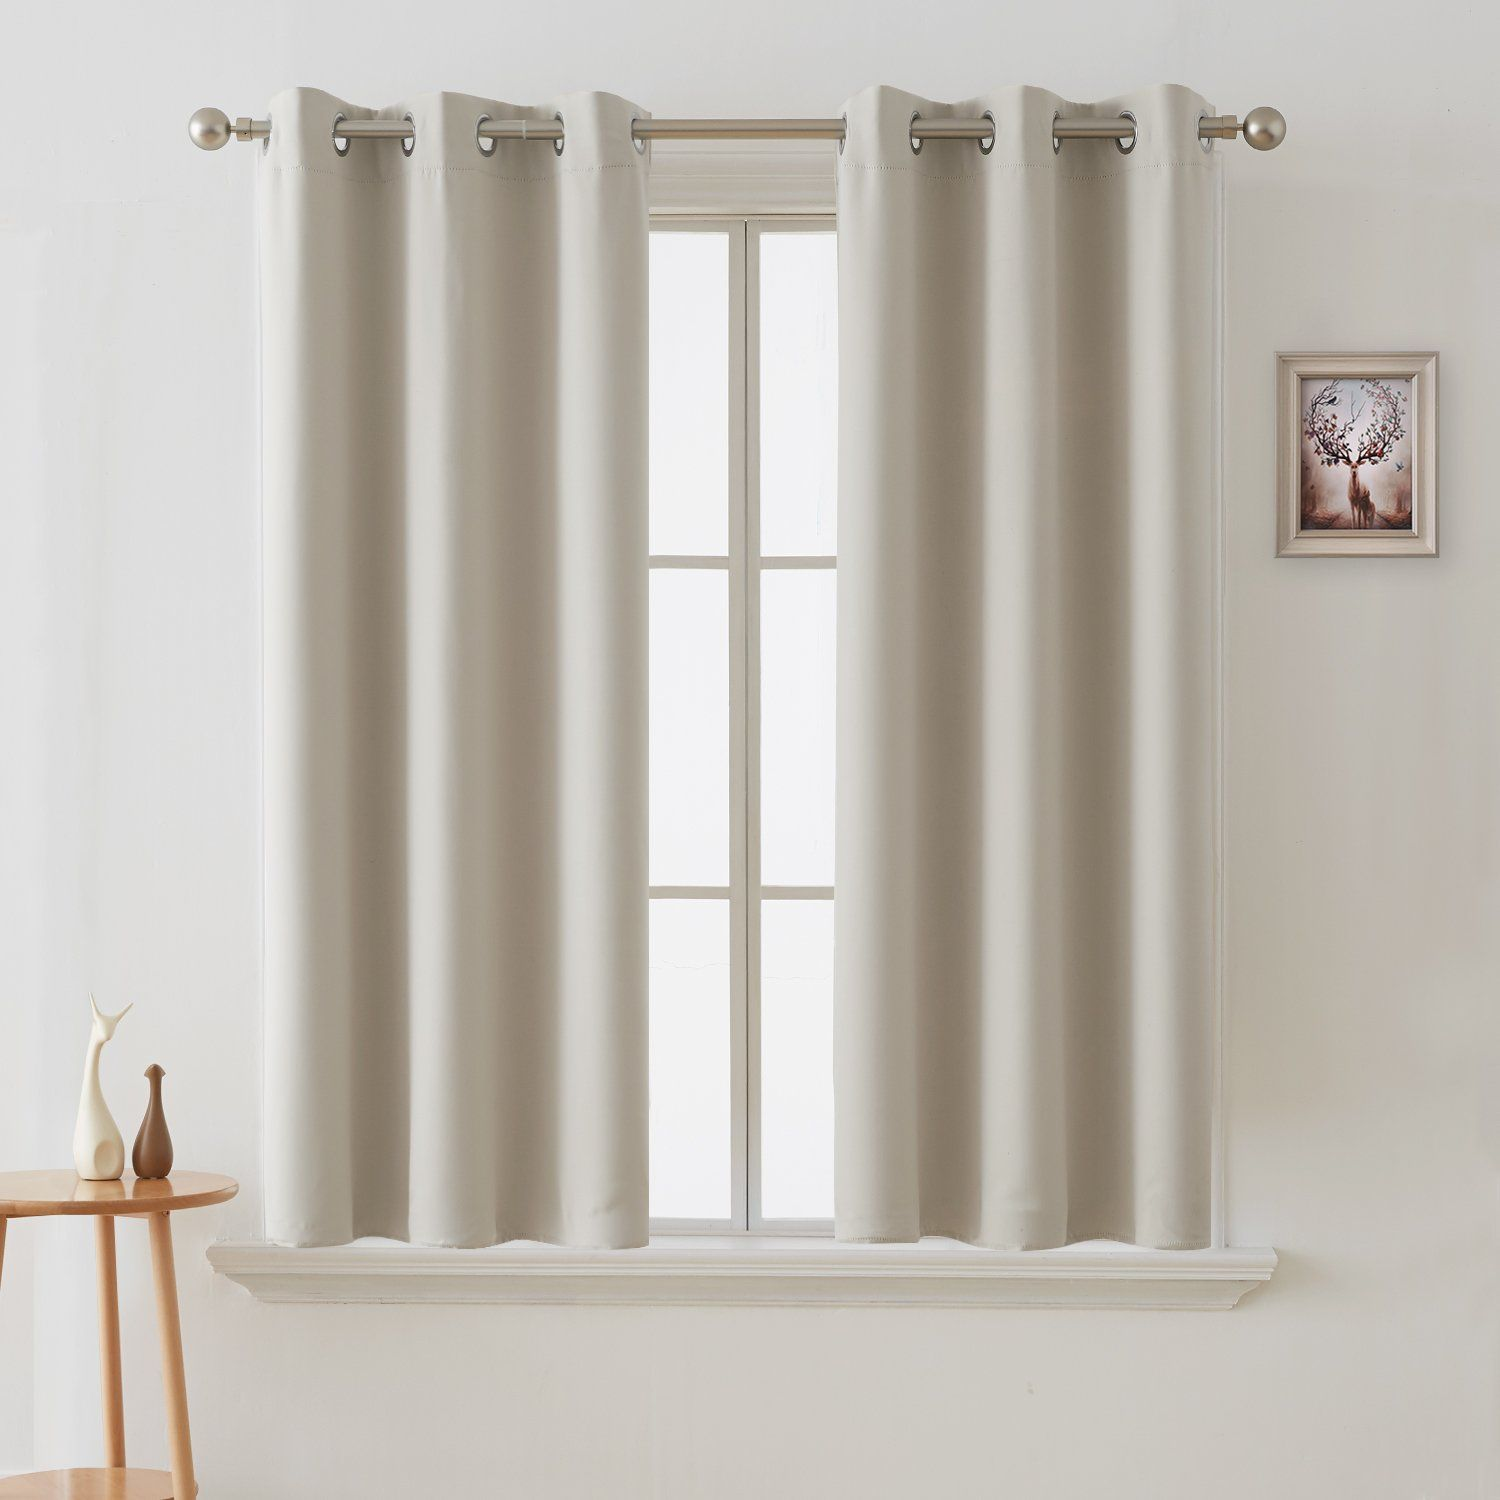 Deconovo Room Darkening Curtain Thermal Insulated Blackout Curtains For Kids Room Light Beige 38 X 63 Inch 2 Panels Insulated Curtains Curtains Kids Curtains